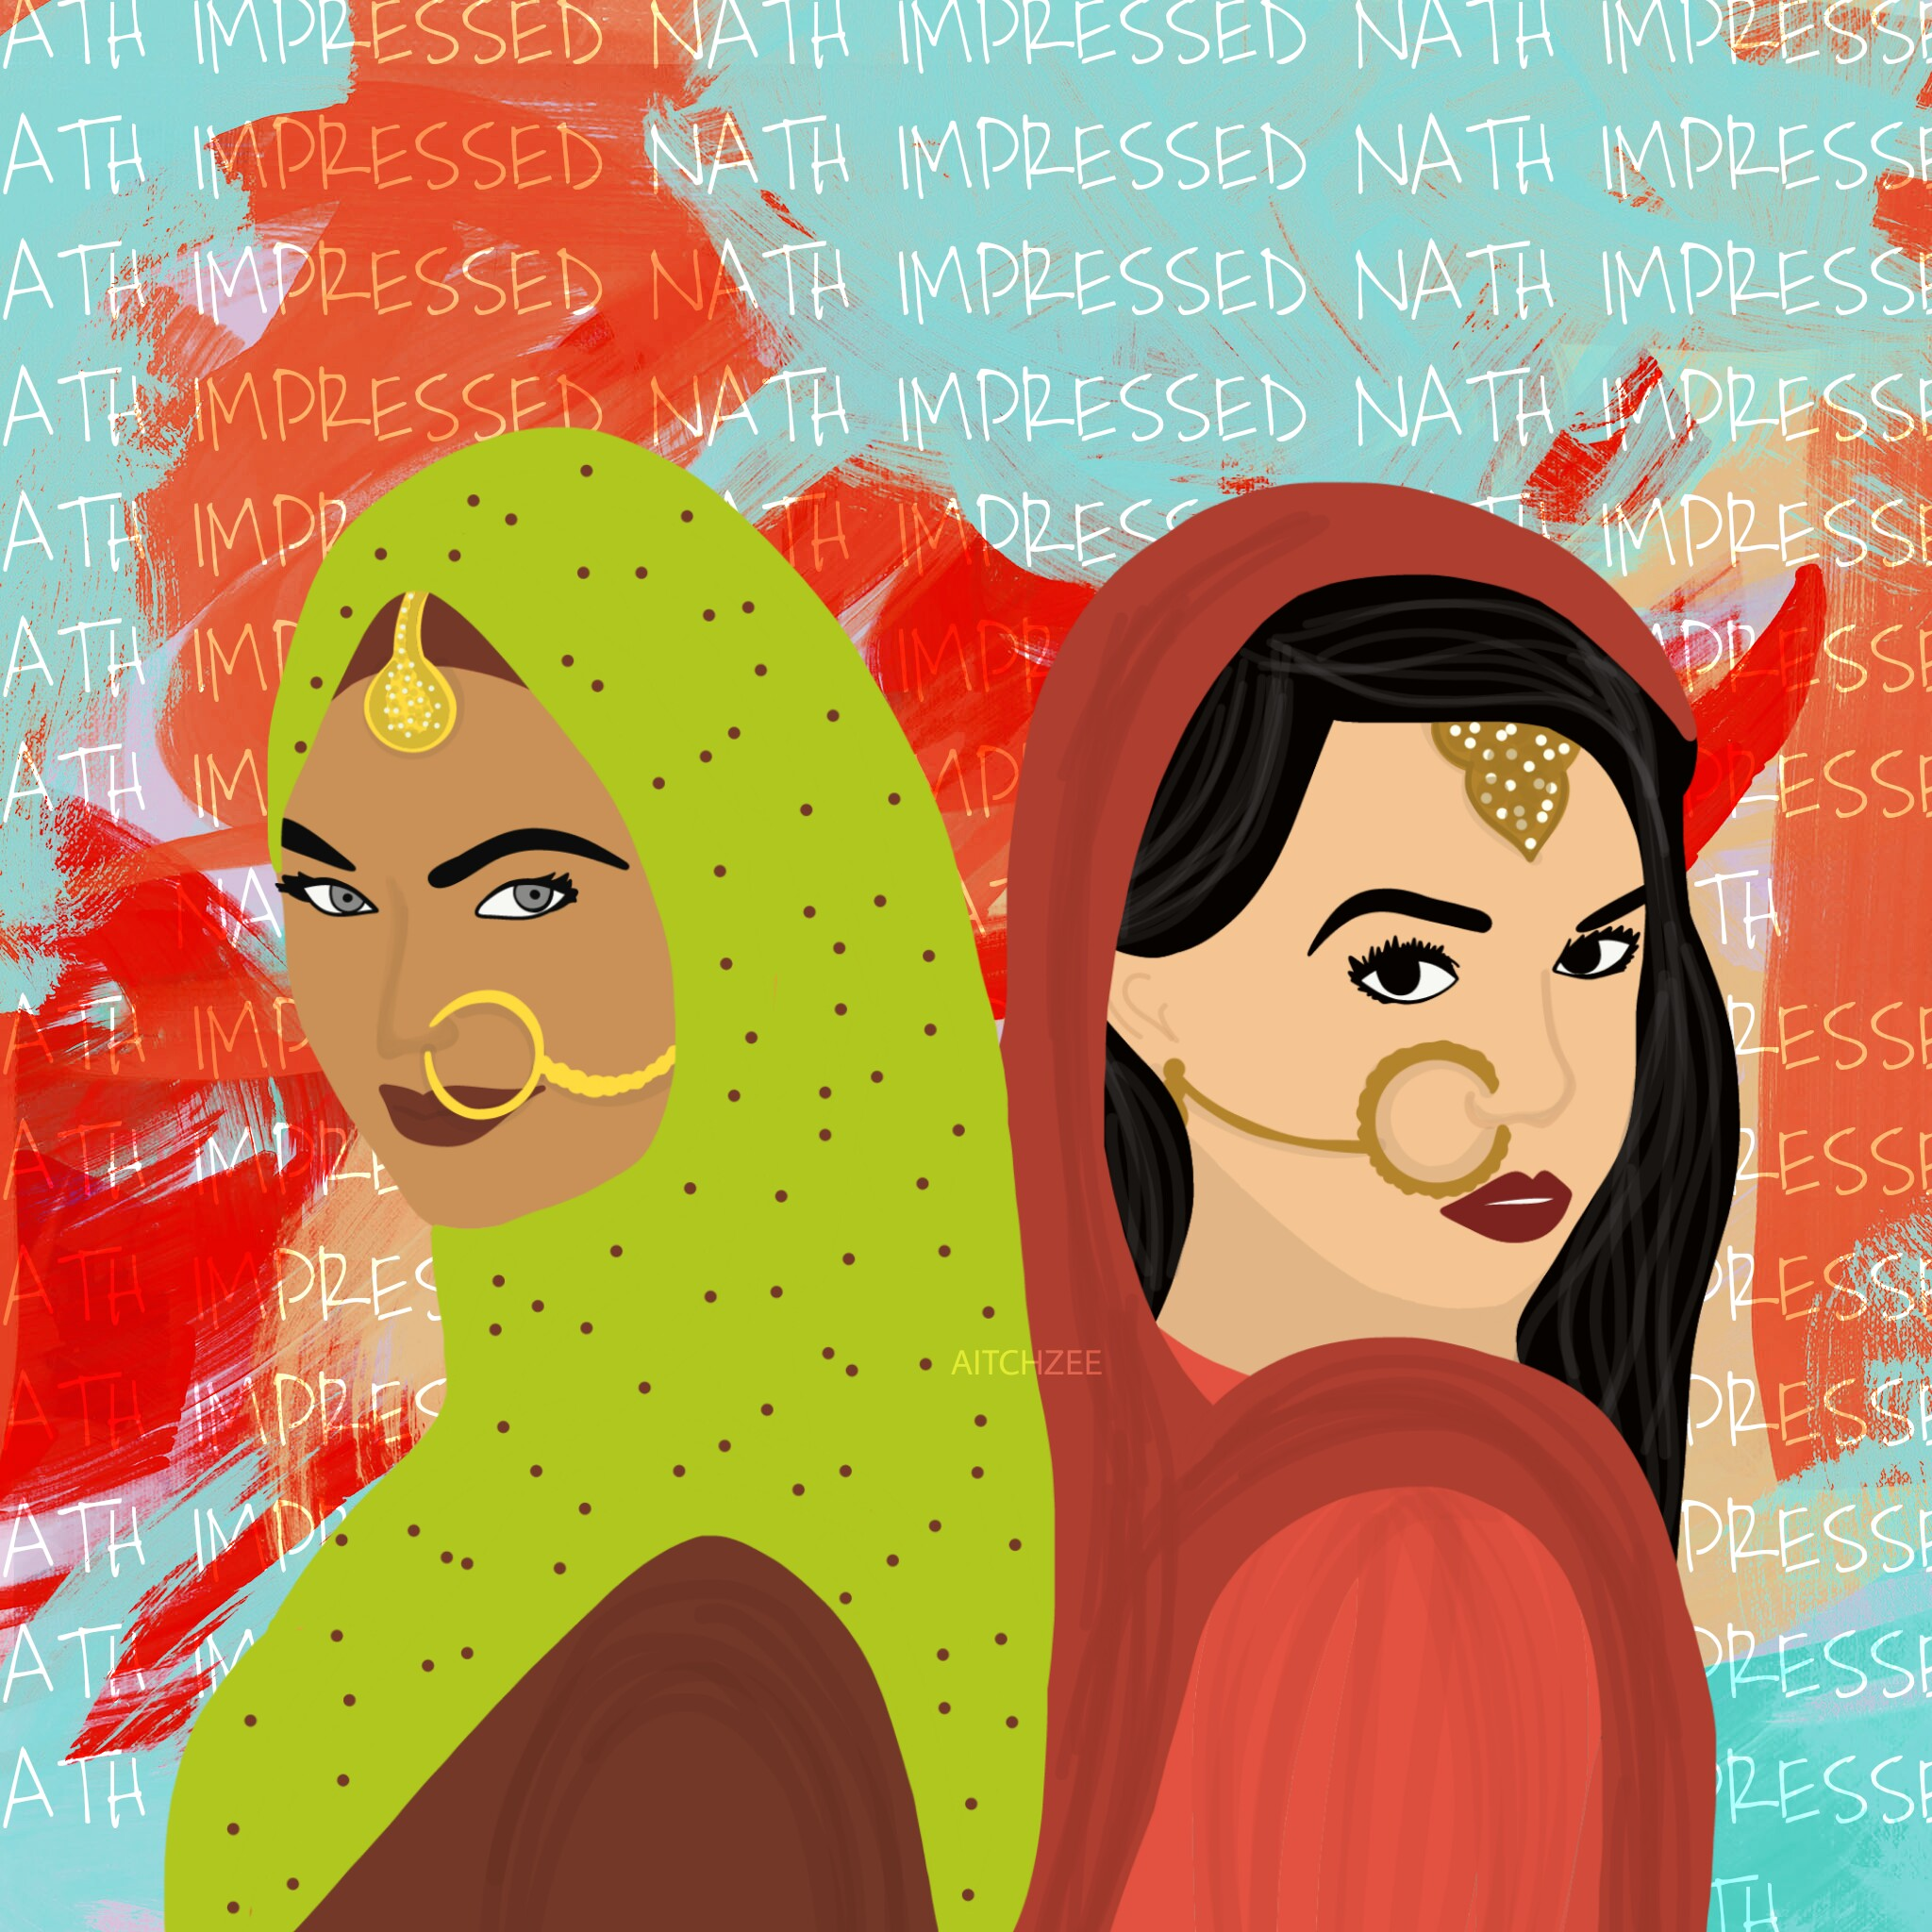 #NATHimpressed is an illustration made in response to commercialisation and appropriation of South Asian culture. (Courtesy of  @aitchzee  / Instagram)